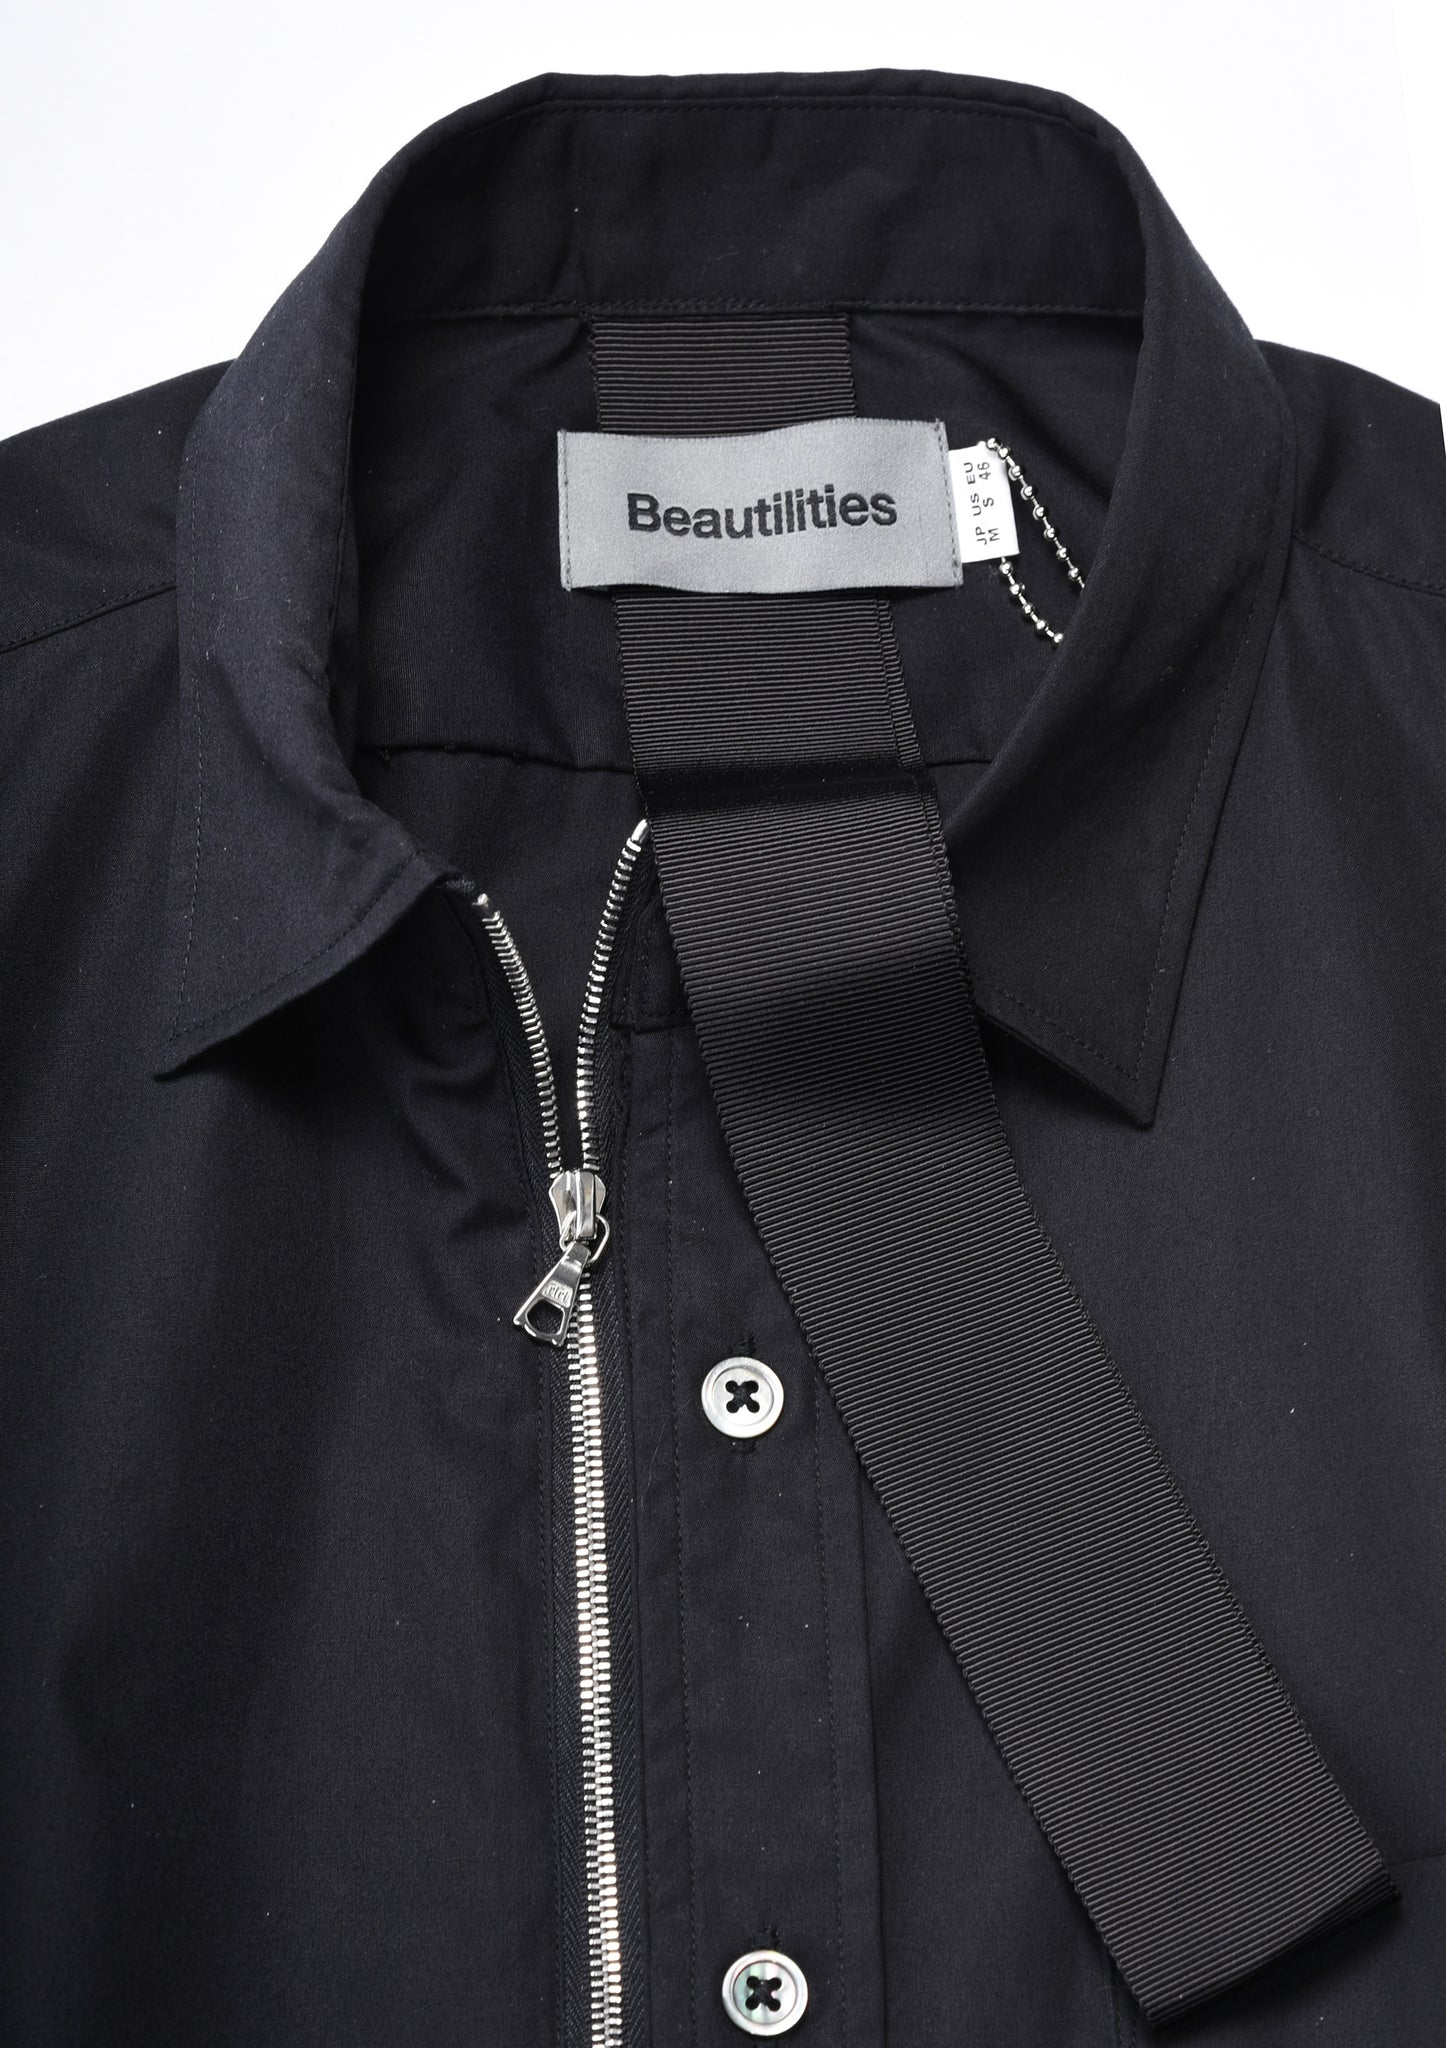 Beautilities Utility Zip Shirt Black